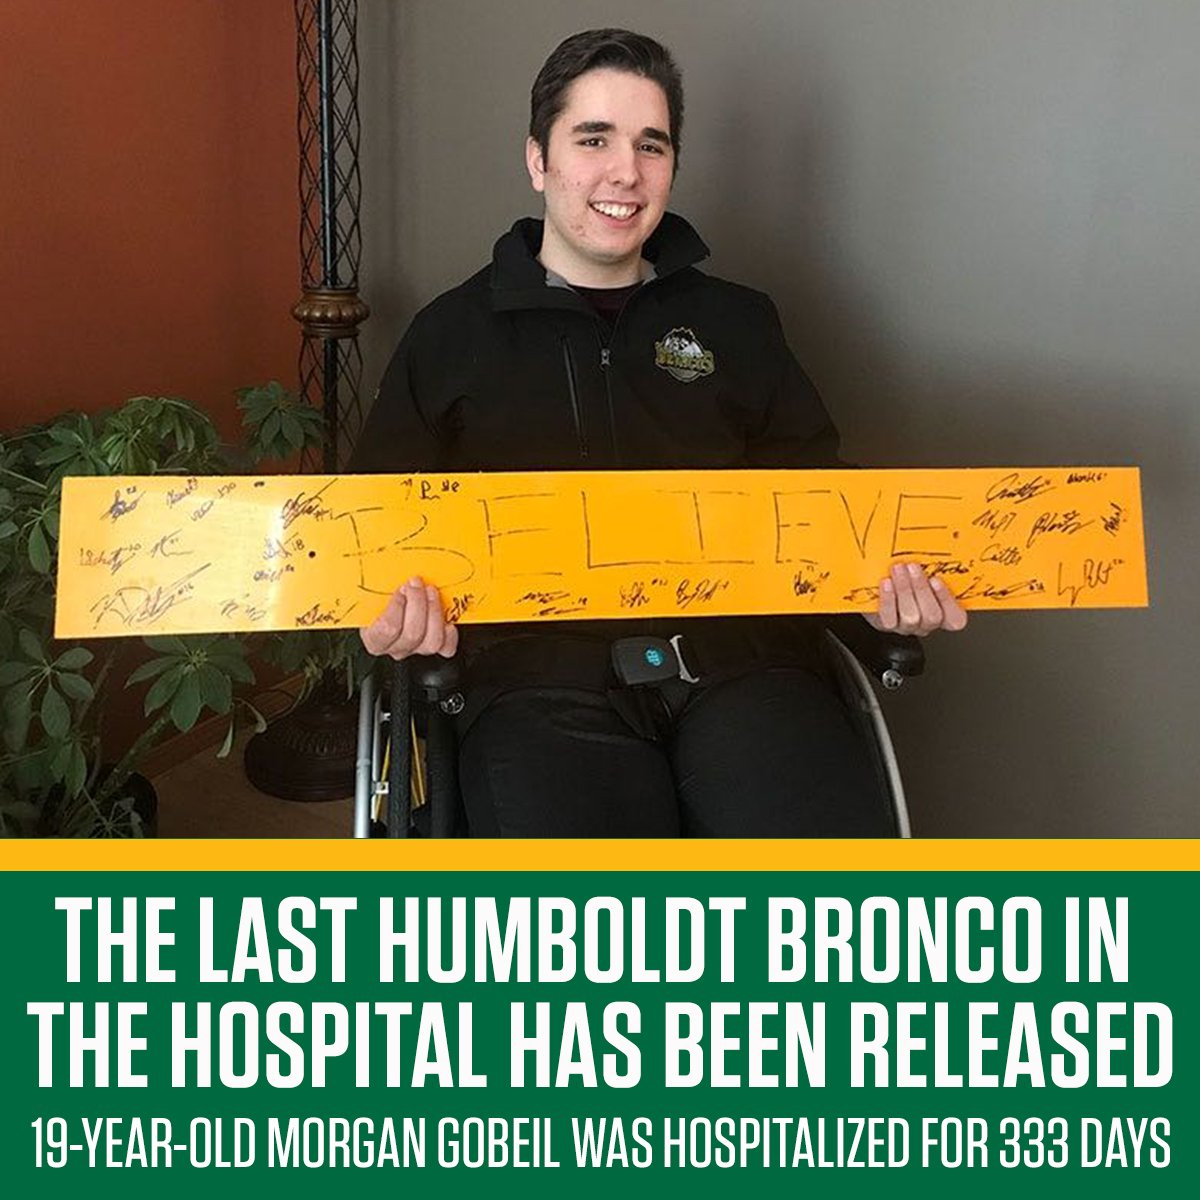 Almost a year after the accident, the last Humboldt Bronco, Morgan Gobeil, is finally going home. 🙏💛💚 https://t.co/BTt8PtBbE0